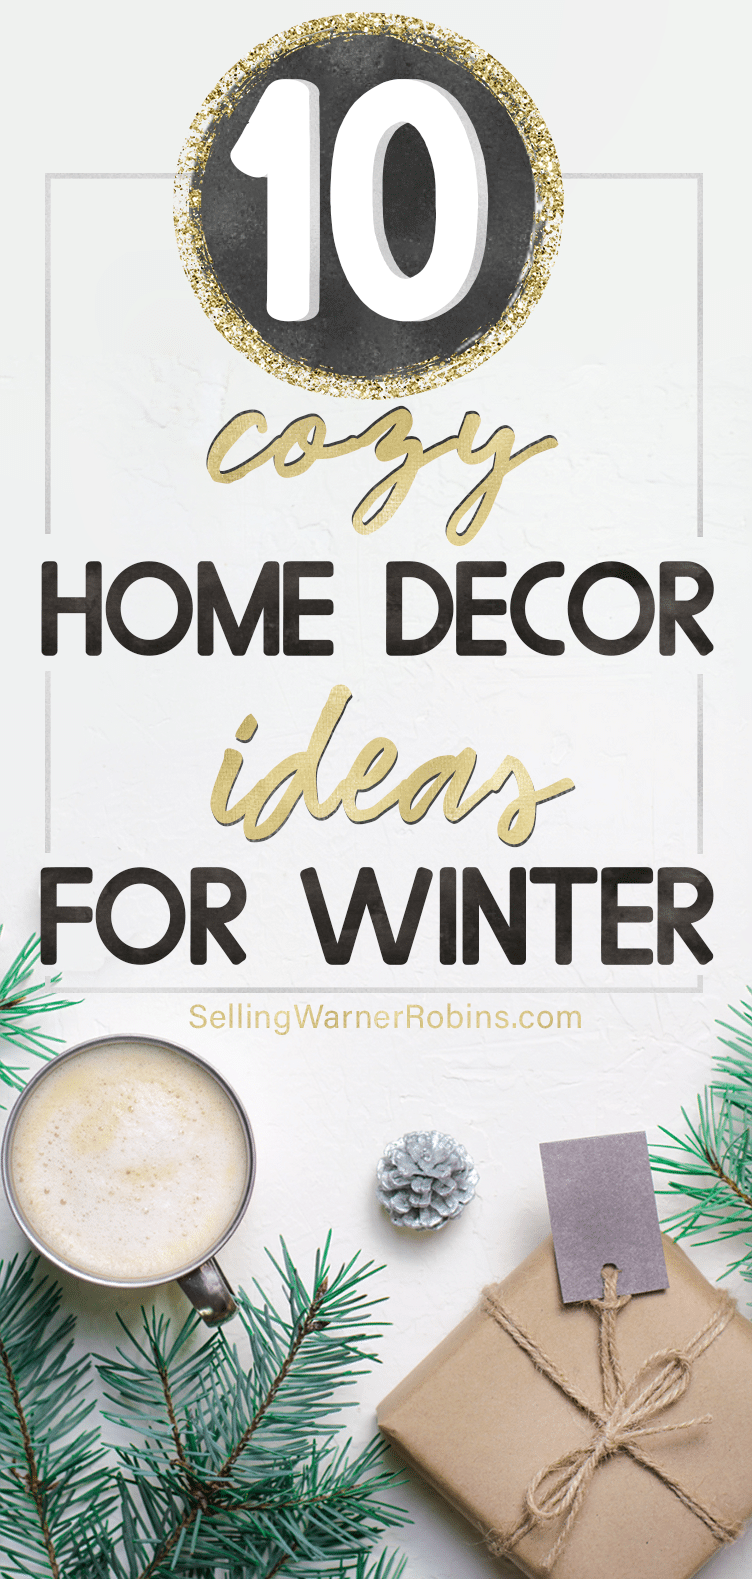 Avoid those winter blues with my top ten ways to transform your home into a cozy abode. Winter is the best time to focus on your home's interior! #realestate #homestaging #winterdecor #winterdecorating